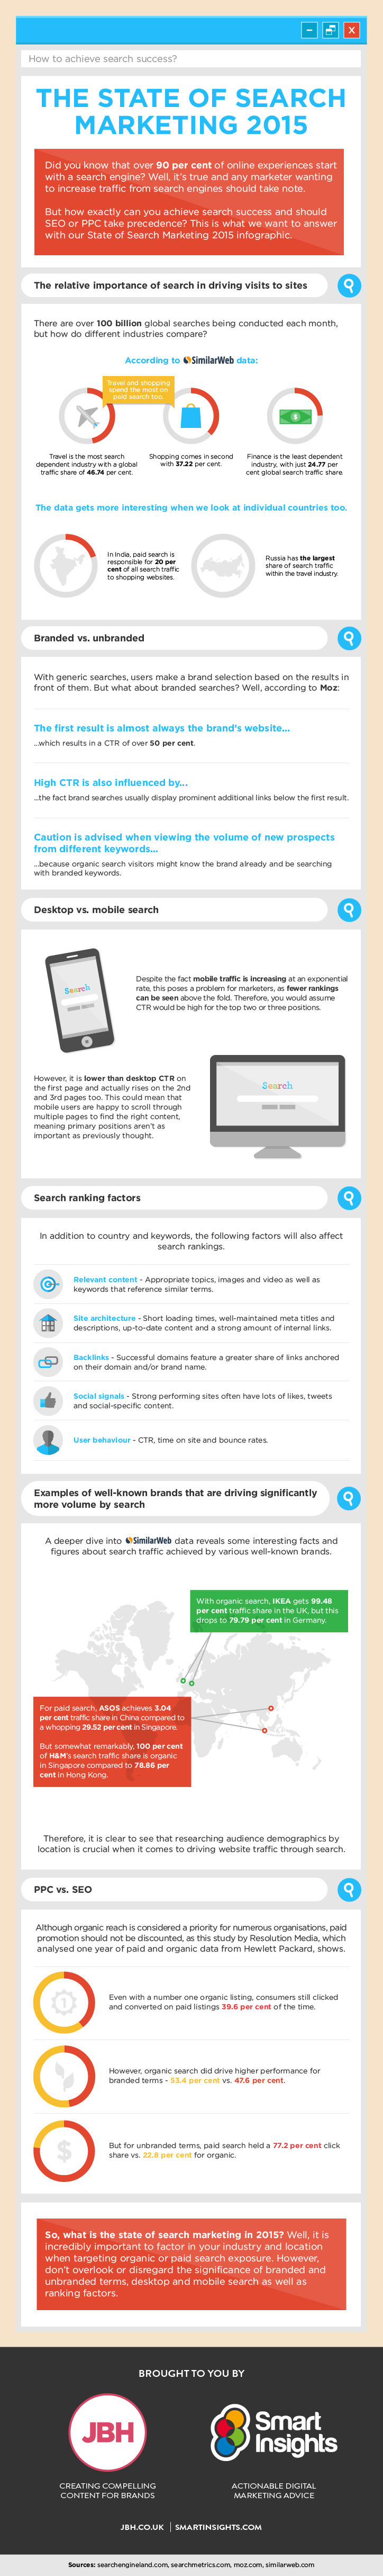 SEARCHMARKETINGINFOG